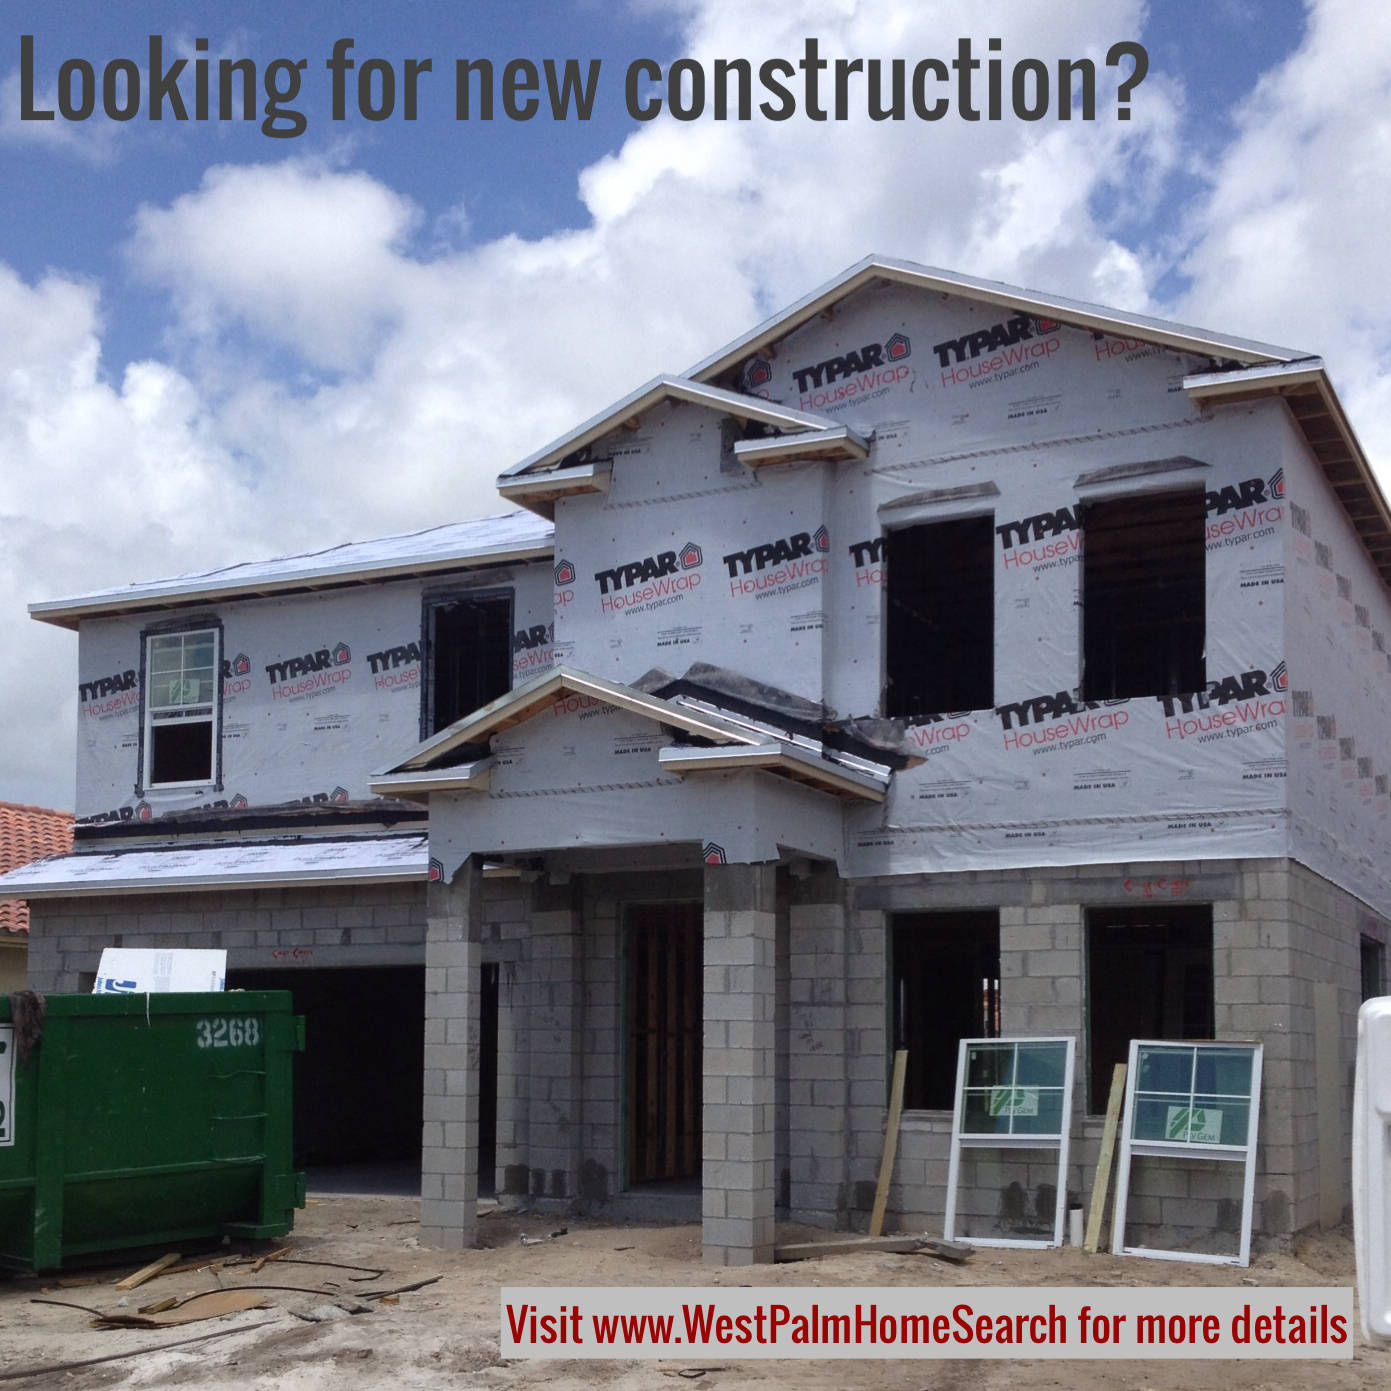 New Construction in Palm Beach County